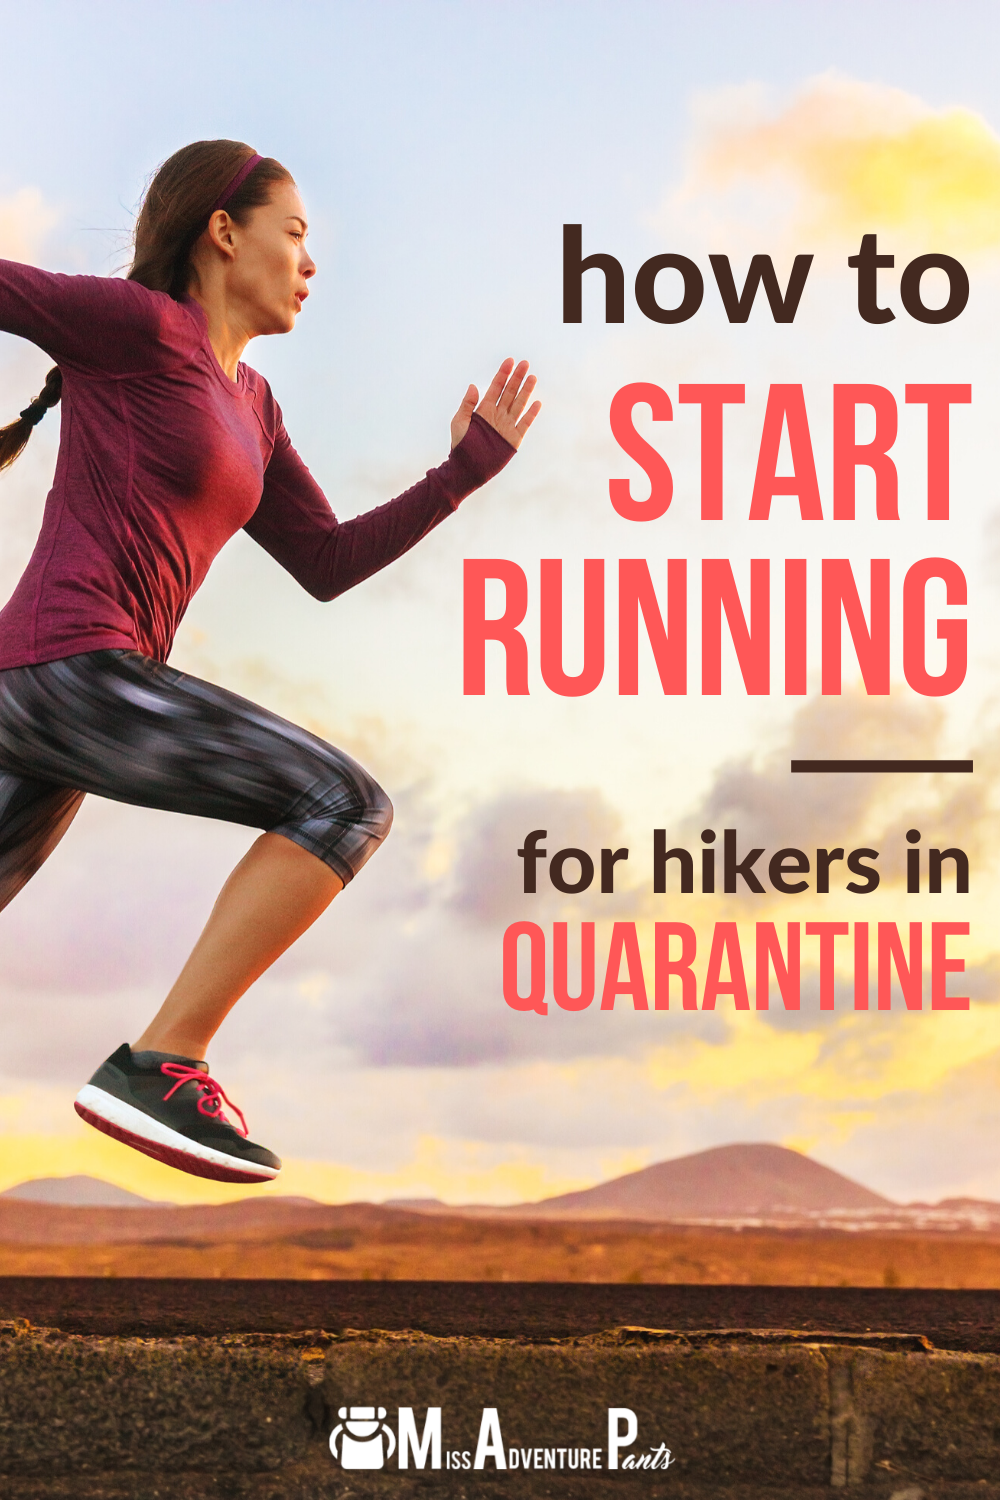 how to start running for hikers in quarantine